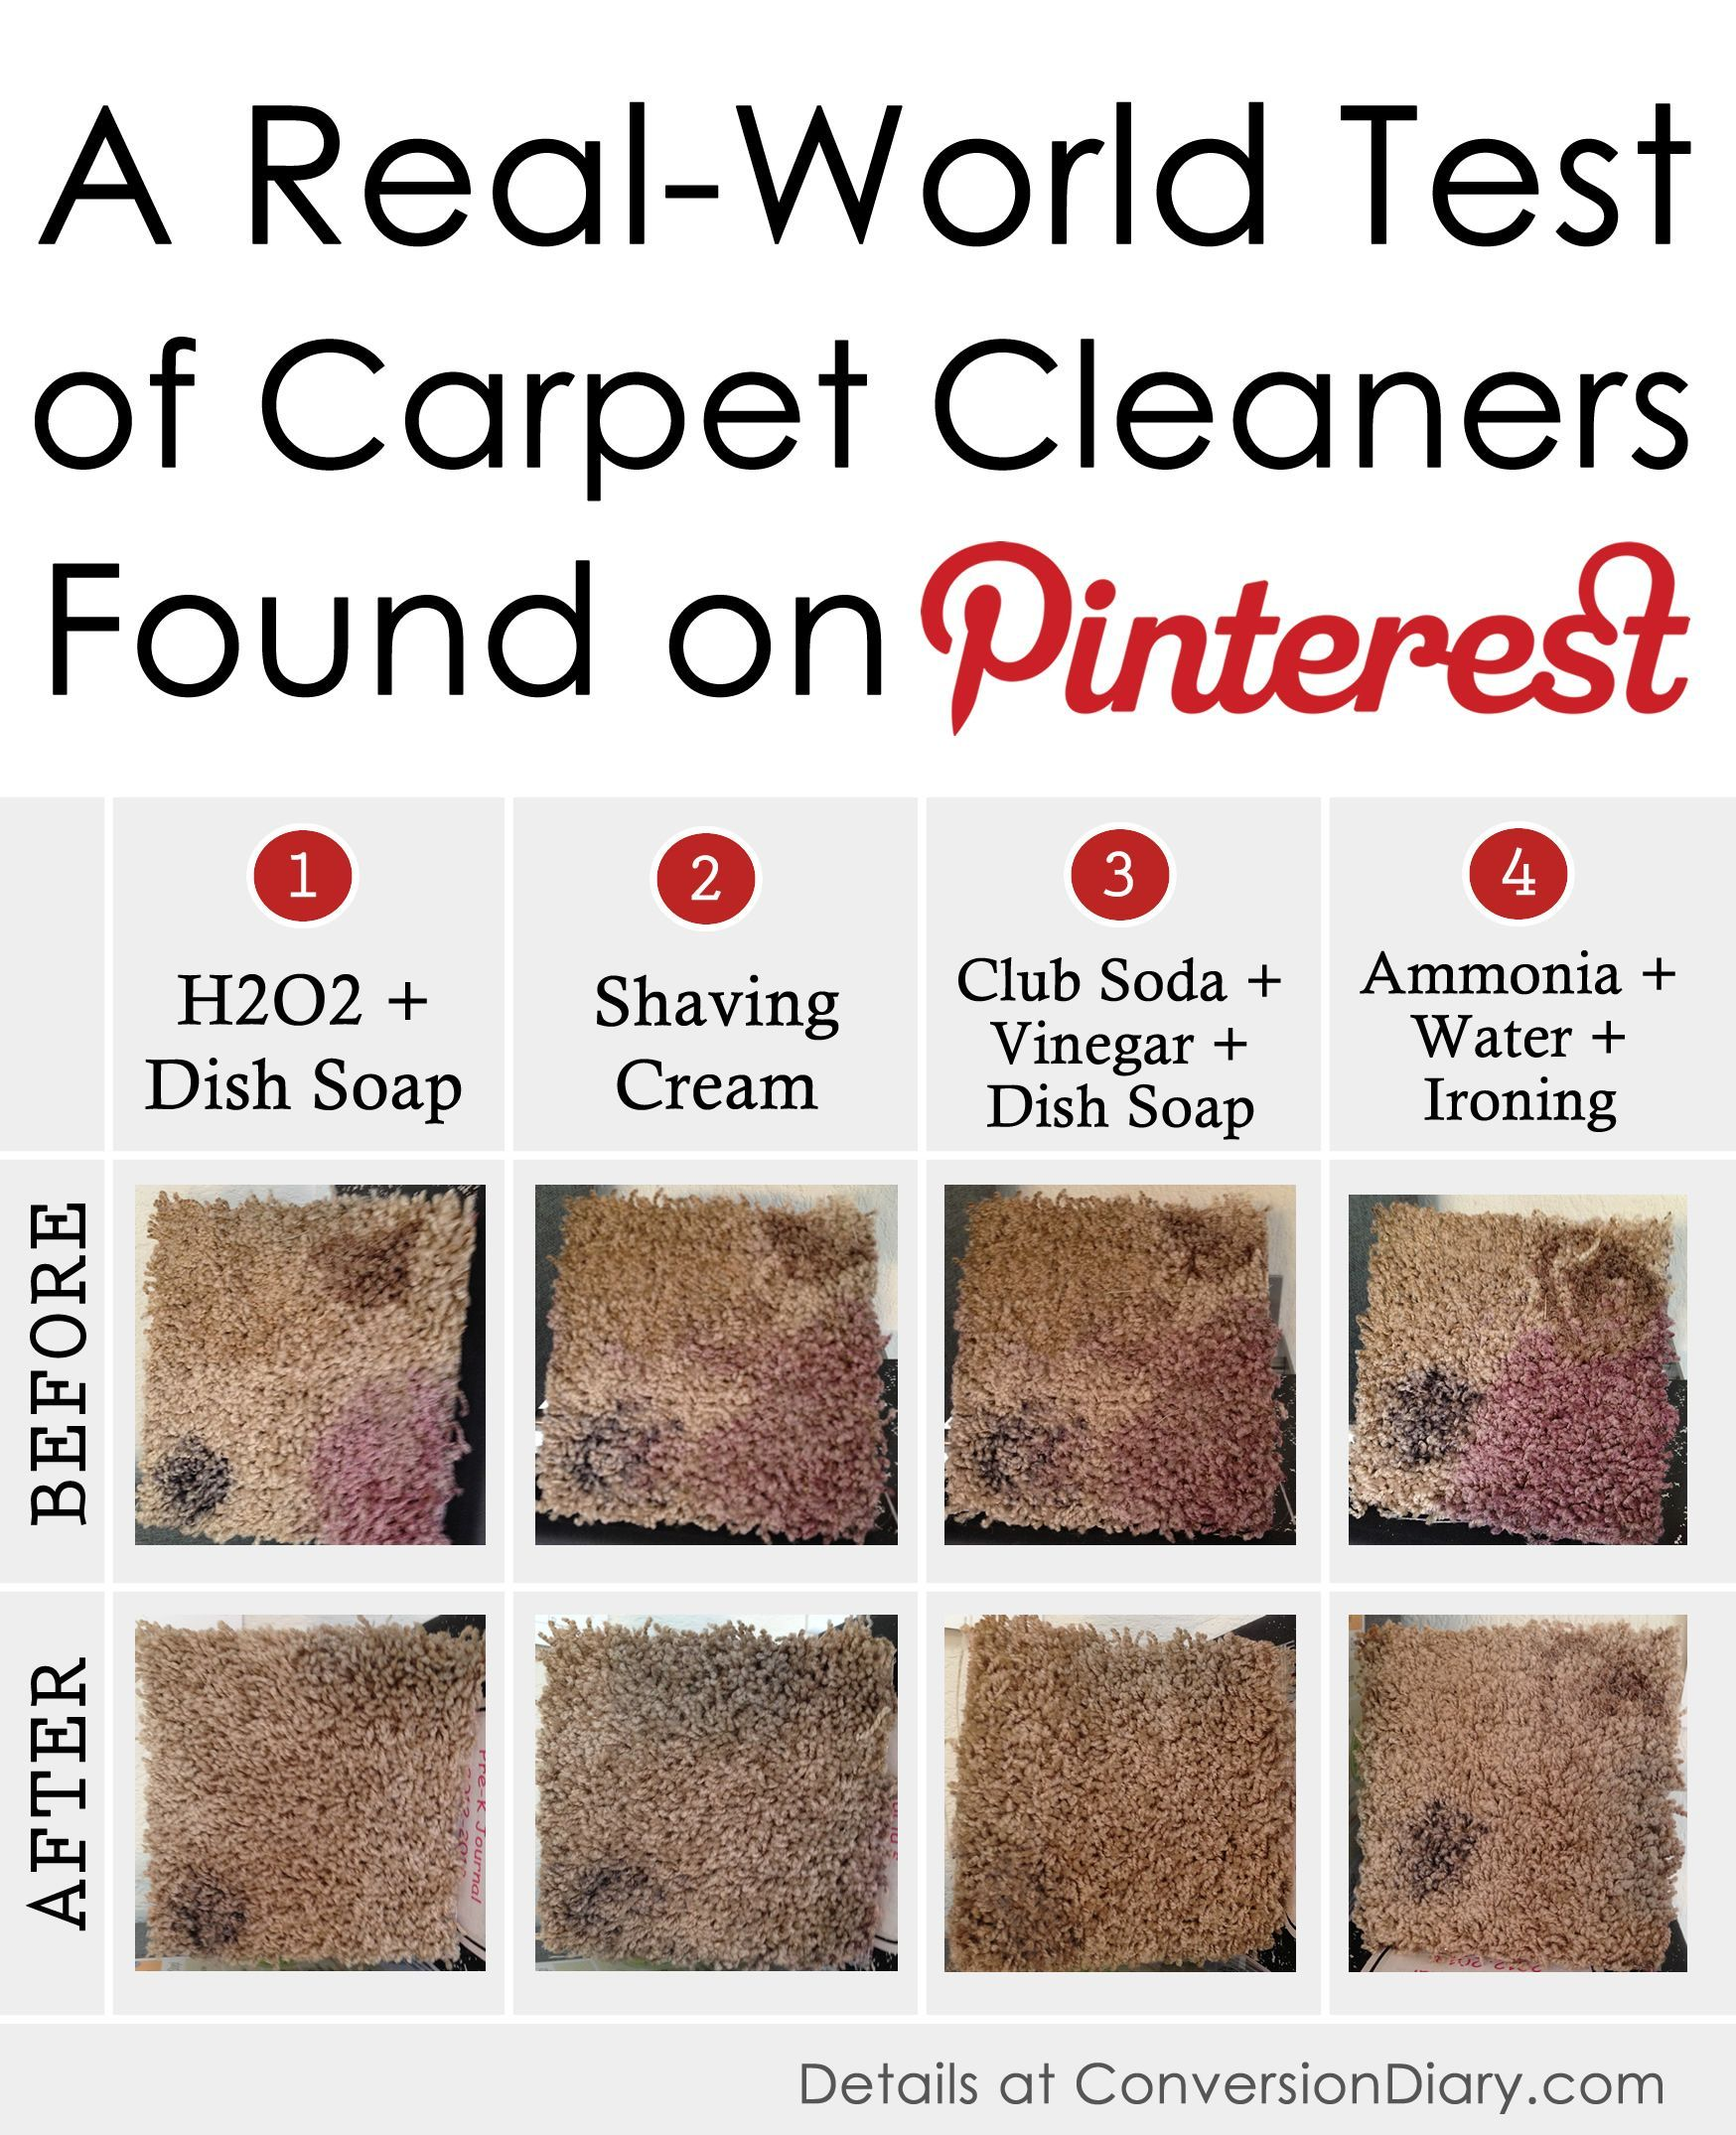 We interrupt this blog to bring you the ultimate Pinterest carpet-cleaning challenge